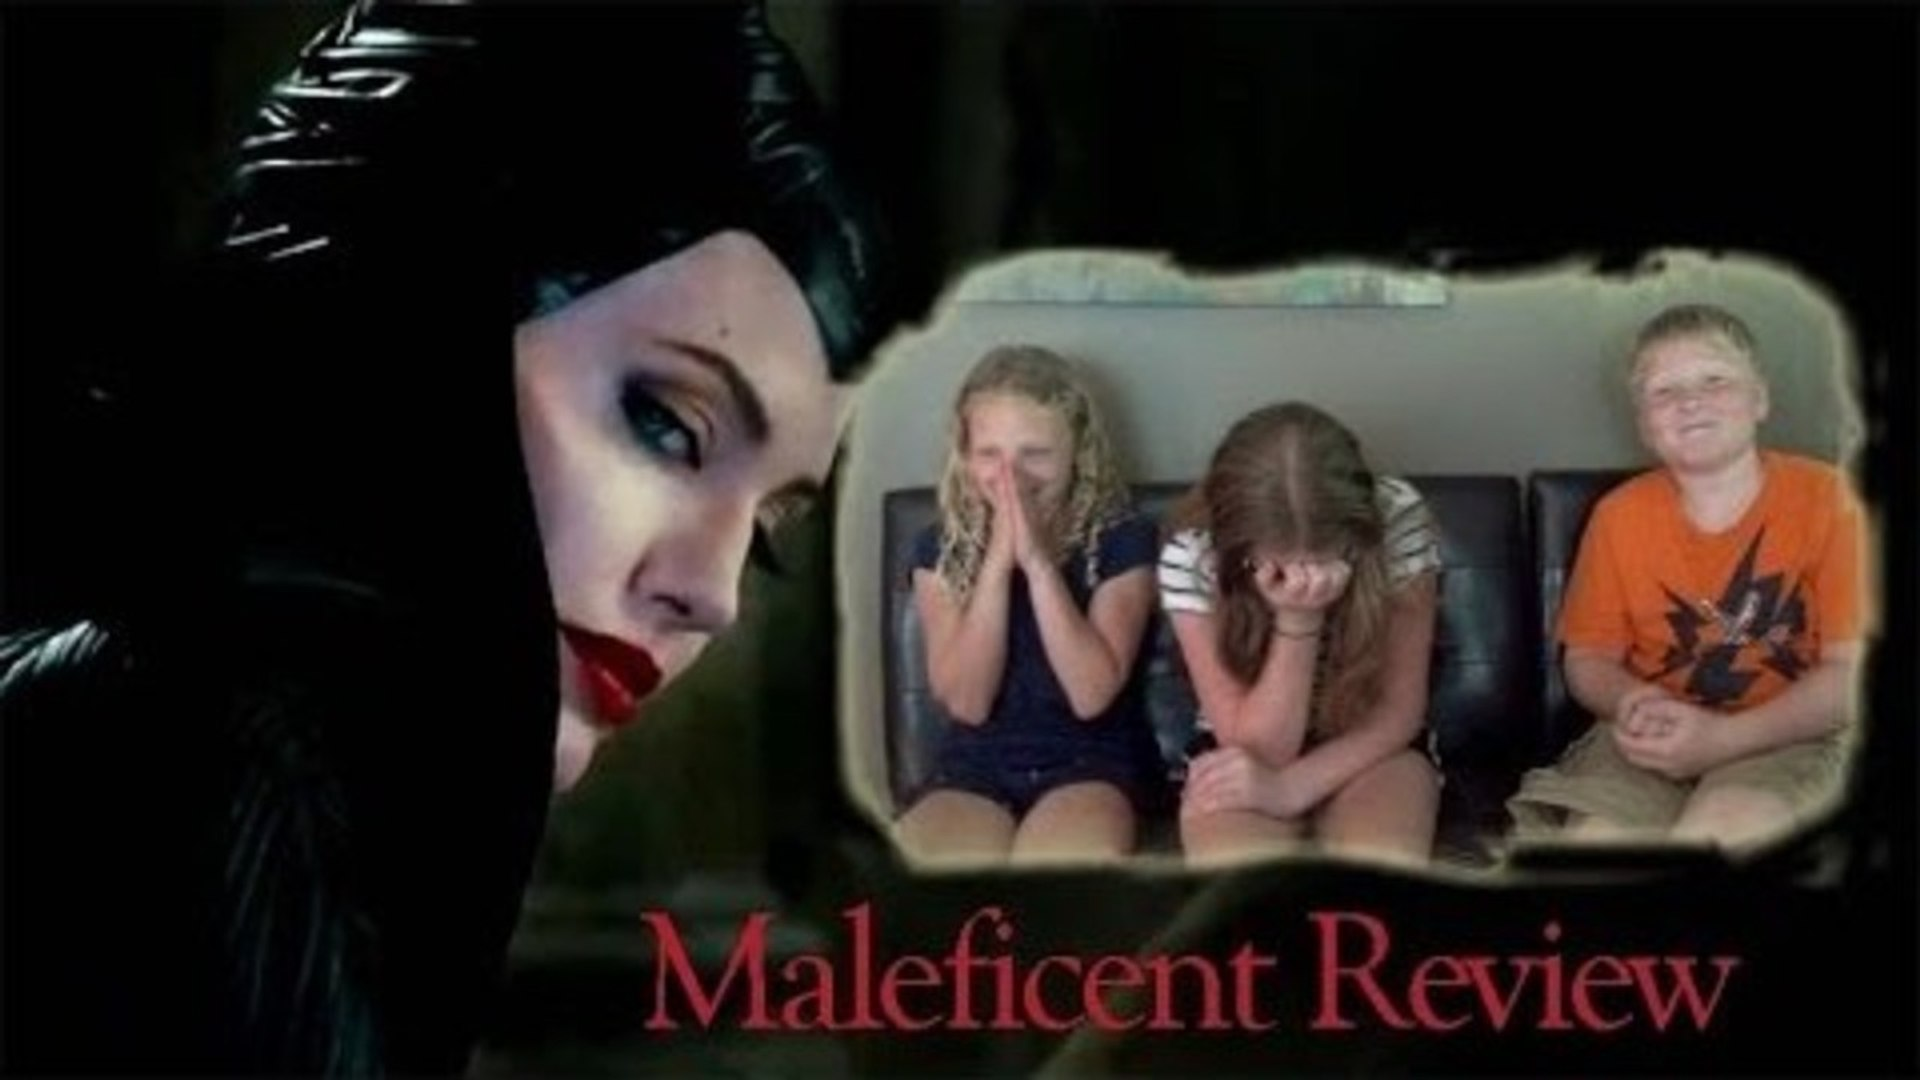 Disney Maleficent Movie Review by Kids